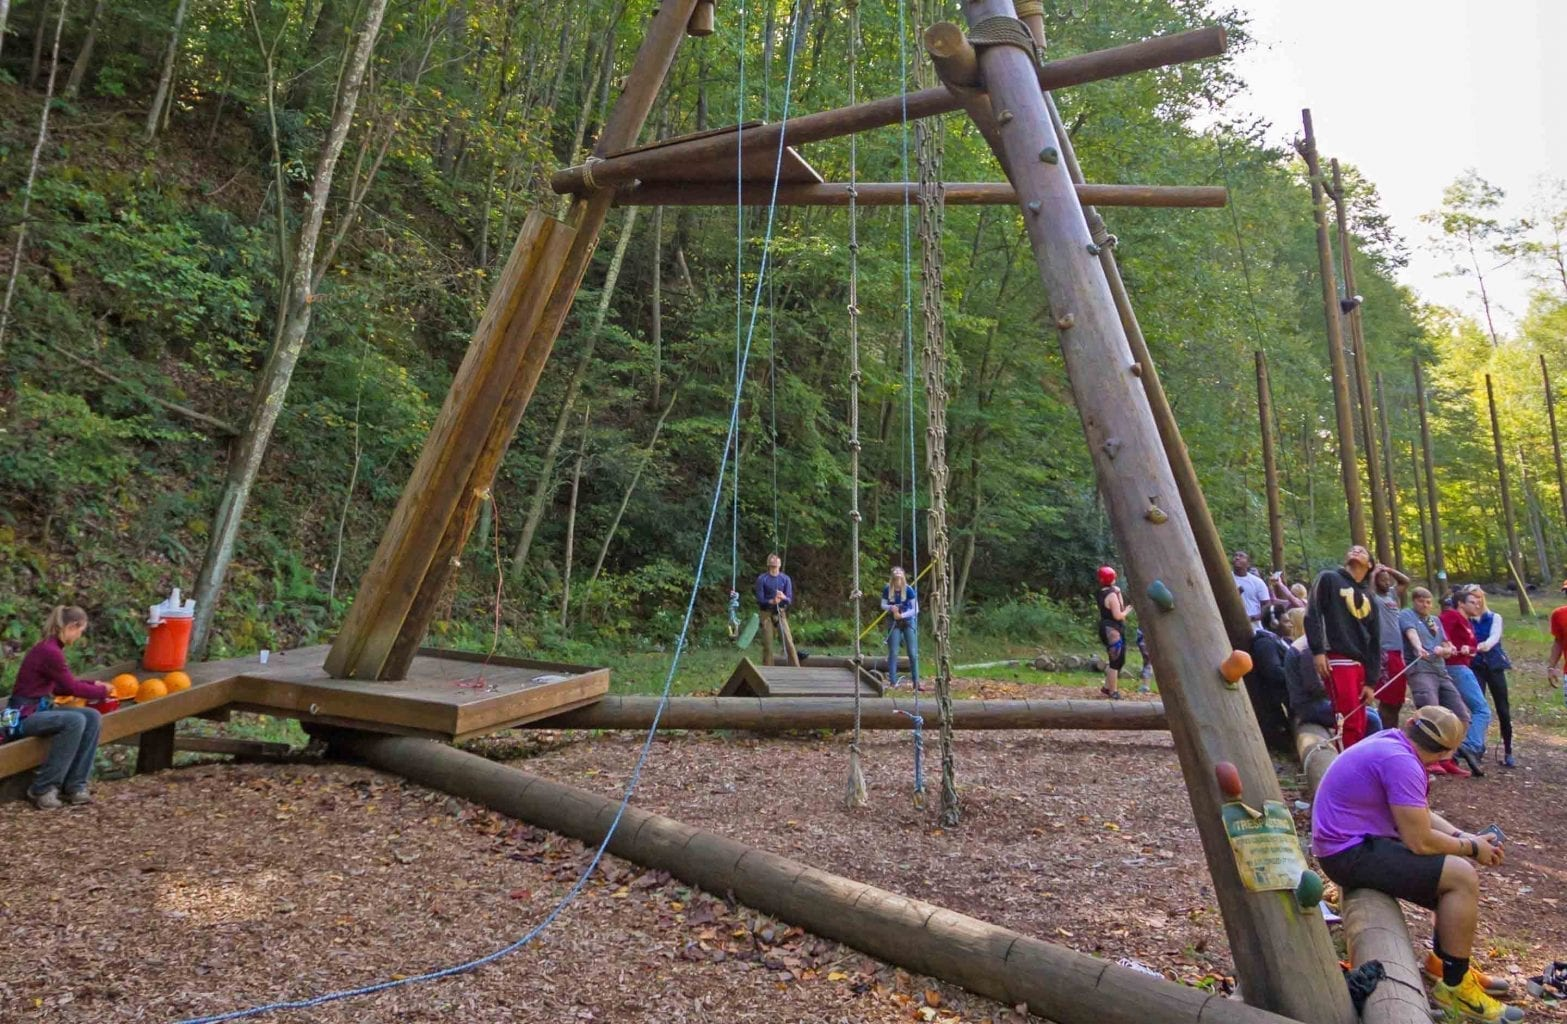 The view from the ground of the alpine tower with ropes and a group preparing to climb the Team Challenge Course at ACE Adventure Resort